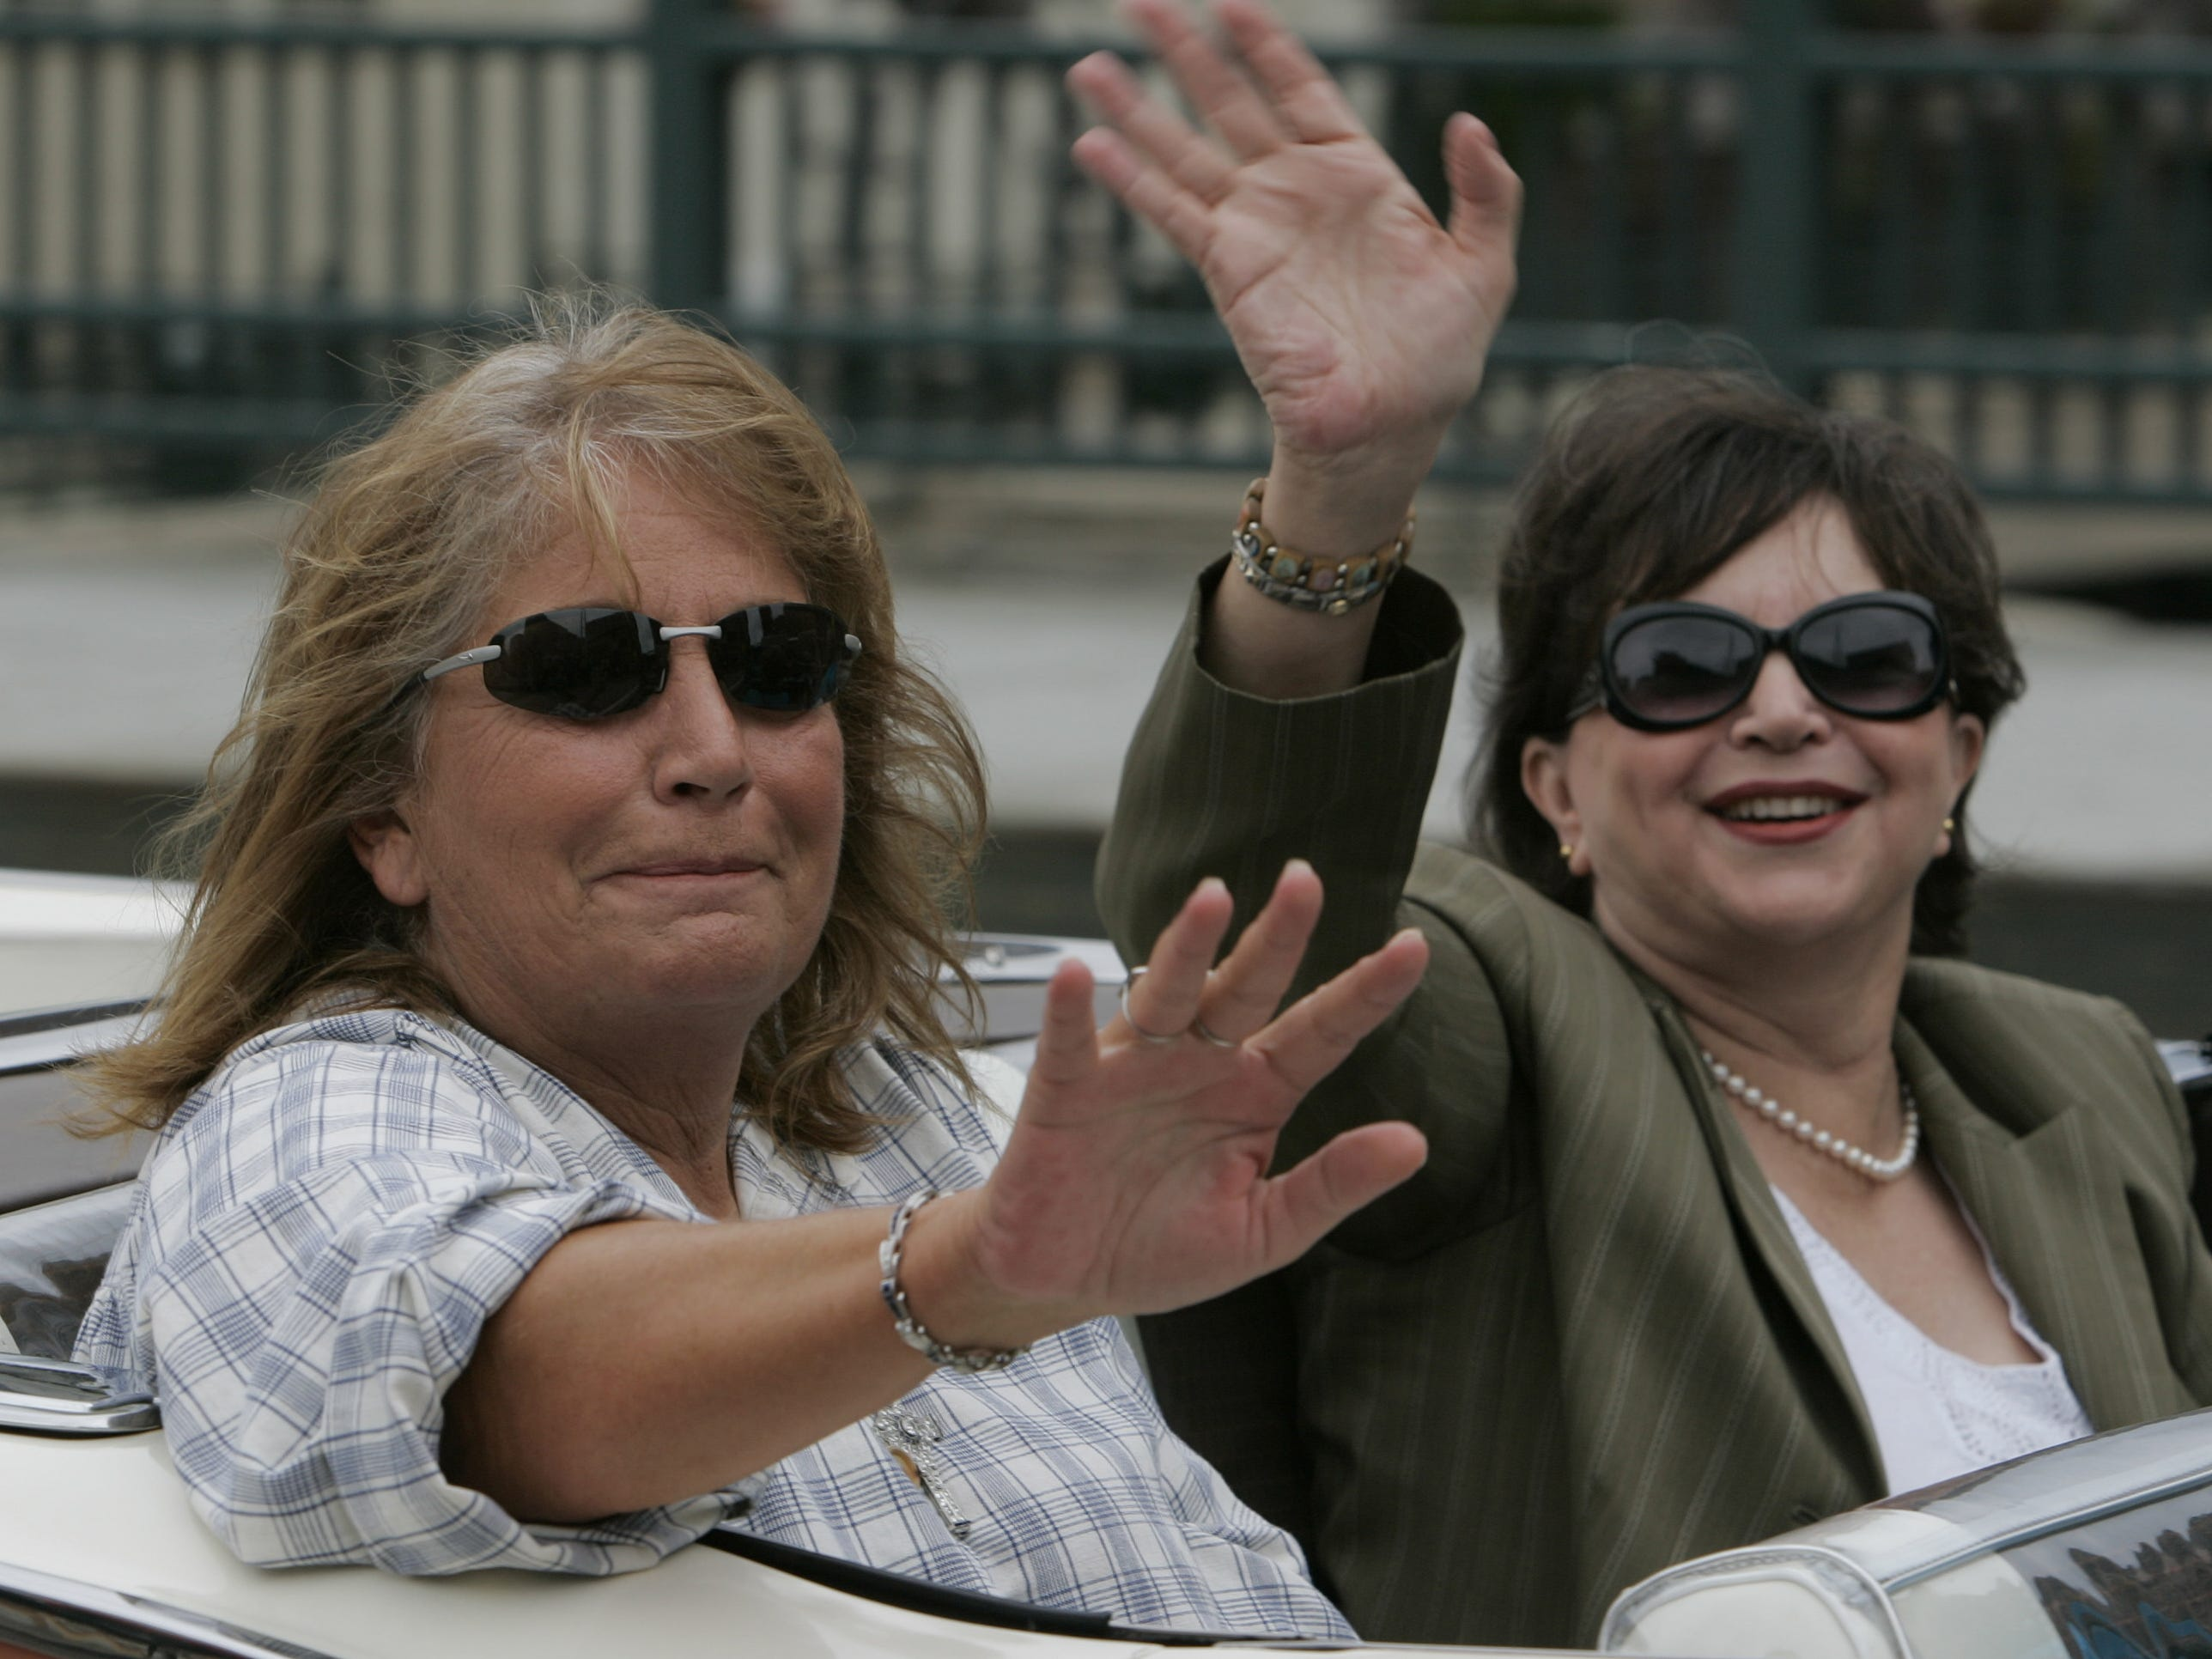 """Penny Marshall (left) and Cindy  Williams, who played Laverne and Shirley on the TV show of the same name, arrive at Milwaukee's RiverWalk for the dedication of """"The Bronz Fonz,"""" a statue commemorating Henry Winkler's """"Happy Days"""" character, on Aug.19, 2008."""